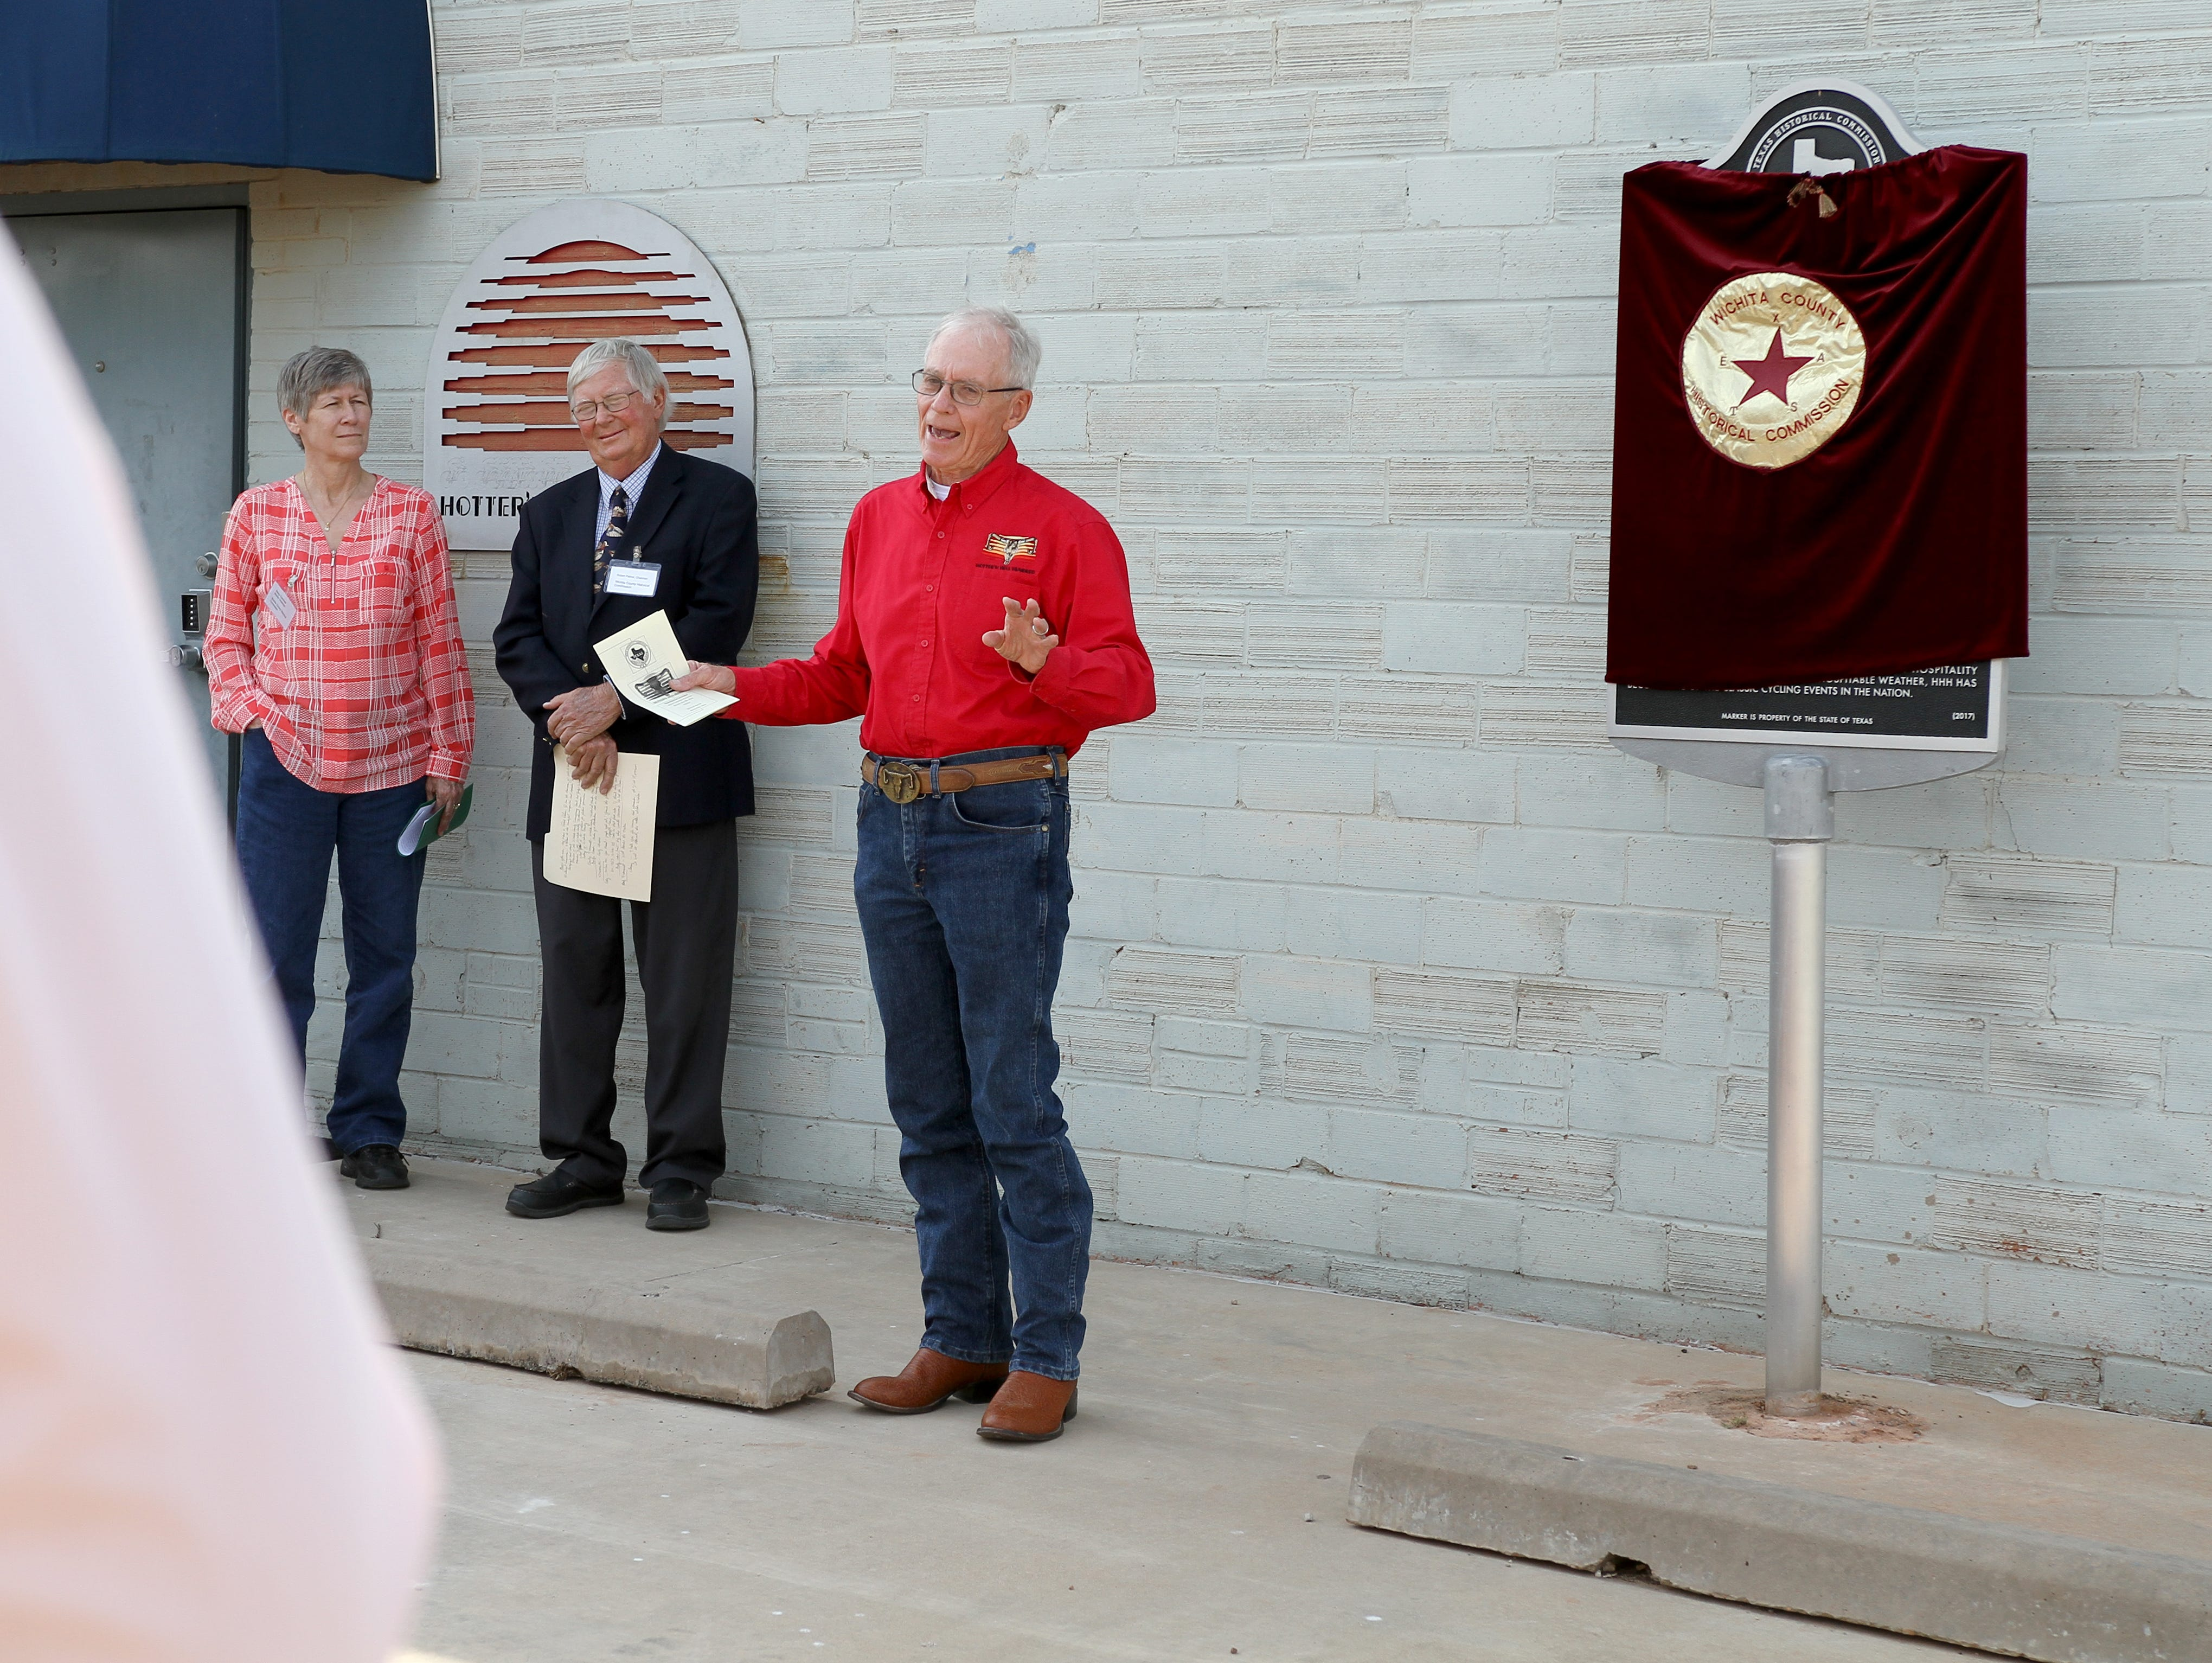 Roby Christie gives a speech as the Wichita County Historical Commission recognizes the Hotter'N Hell Hundred Monday, May 6, 2019, with an Official Texas Historical Marker at a dedication ceremony at the HH100 Clubhouse at 104 Scott.